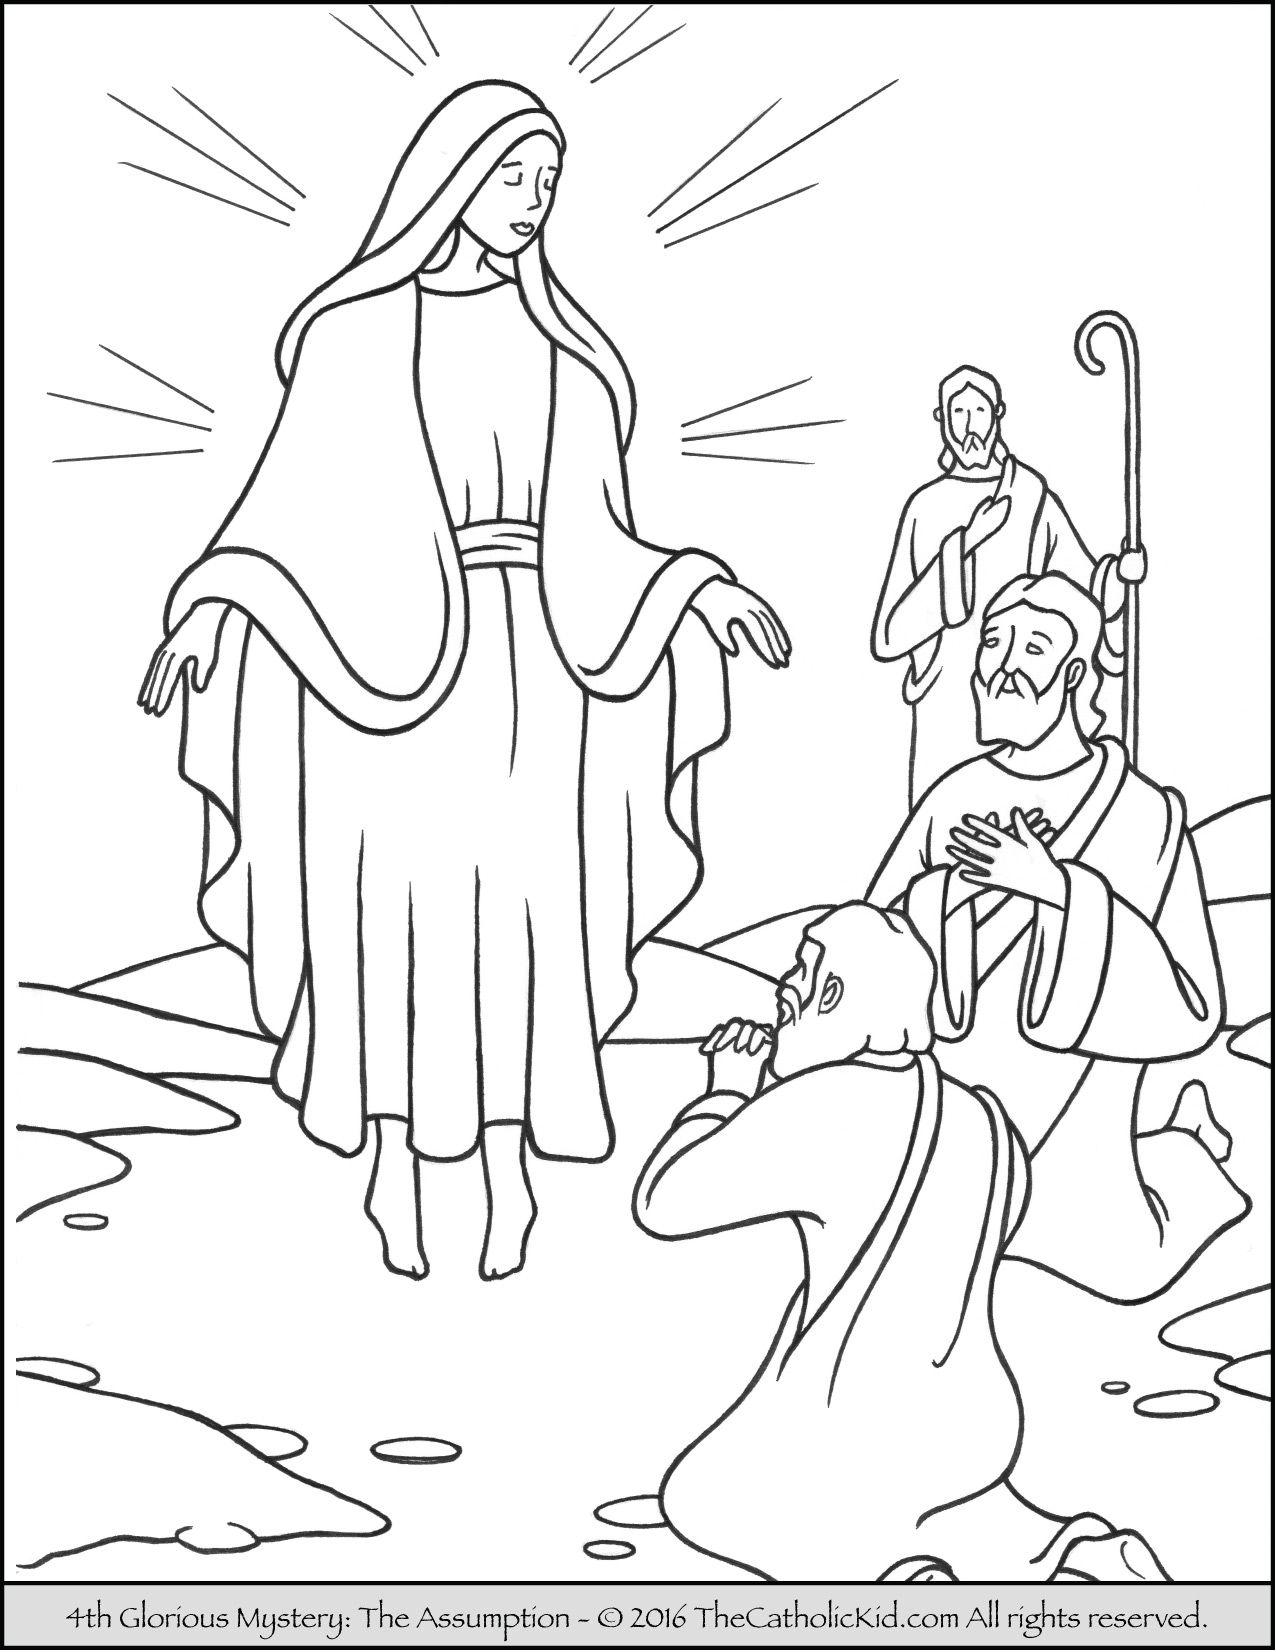 The 4th Glorious Mystery Coloring Page The Assumption Mary is